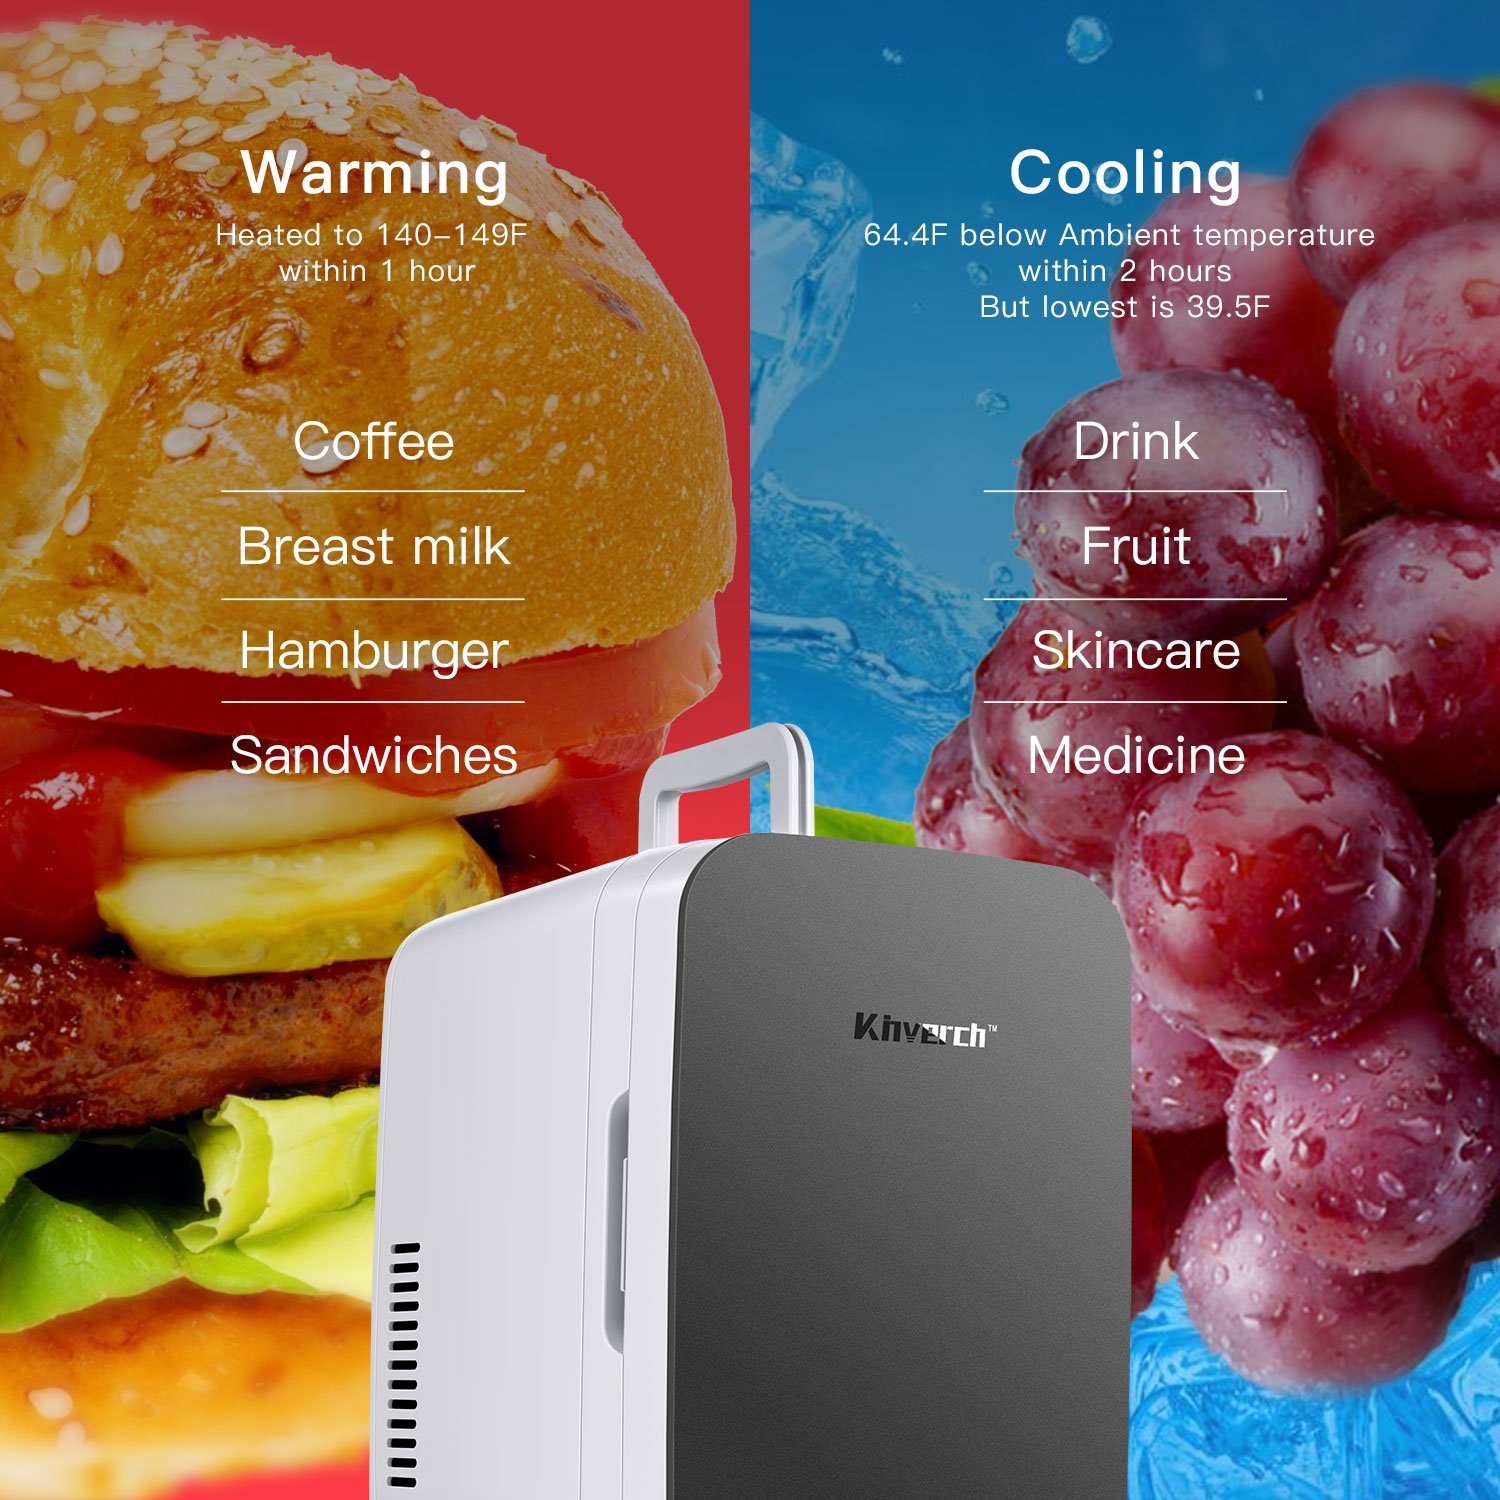 Kinverch Mini Fridge Electric Cooler and Warmer (6 Liter / 6 Can Plus) :110v AC / 12V DC Portable Thermoelectric System,,For Car /Home /Kichen/Junket/Outdoor for frinds / parents/yourself (Silver) by Kinverch (Image #5)